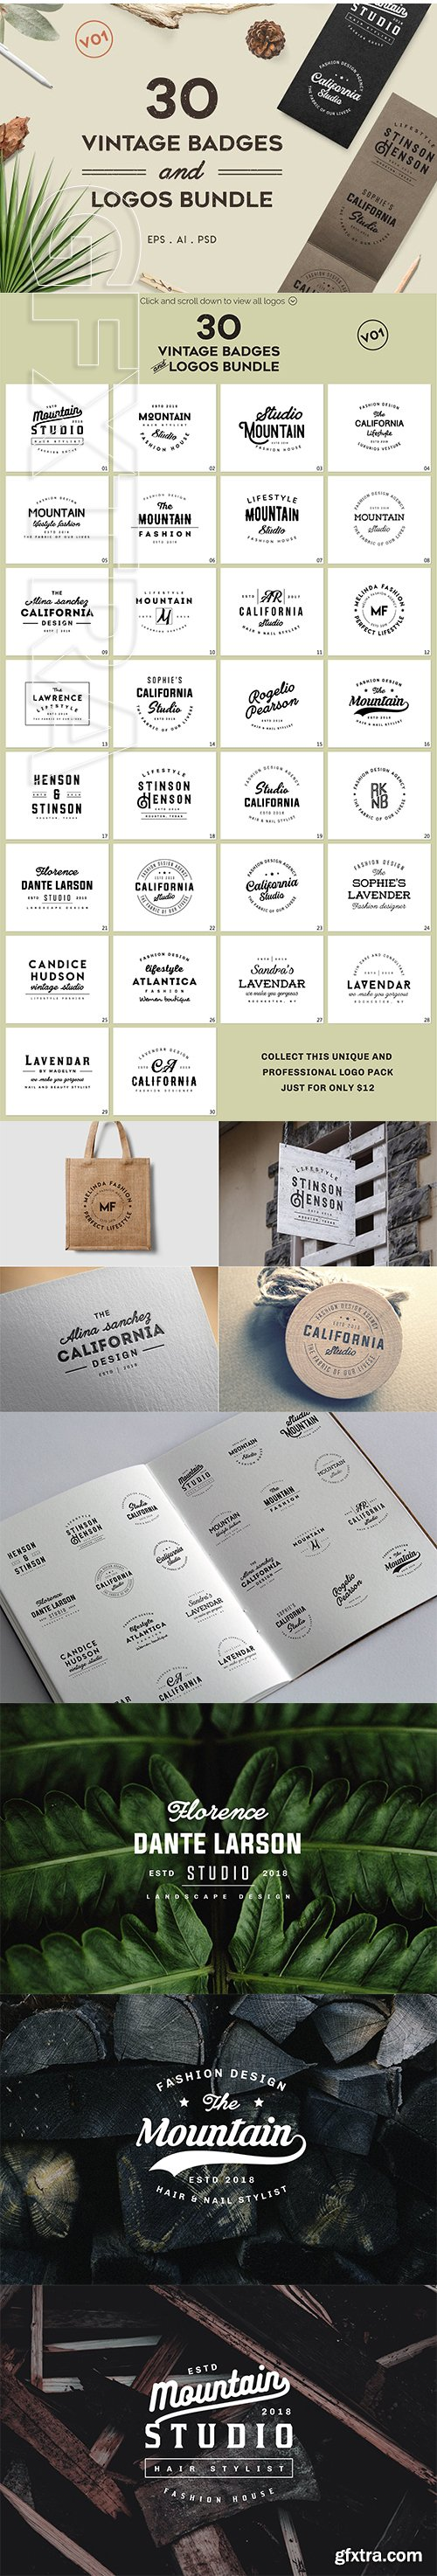 CreativeMarket - Vintage Badges and Logos Bundle V01 2838047